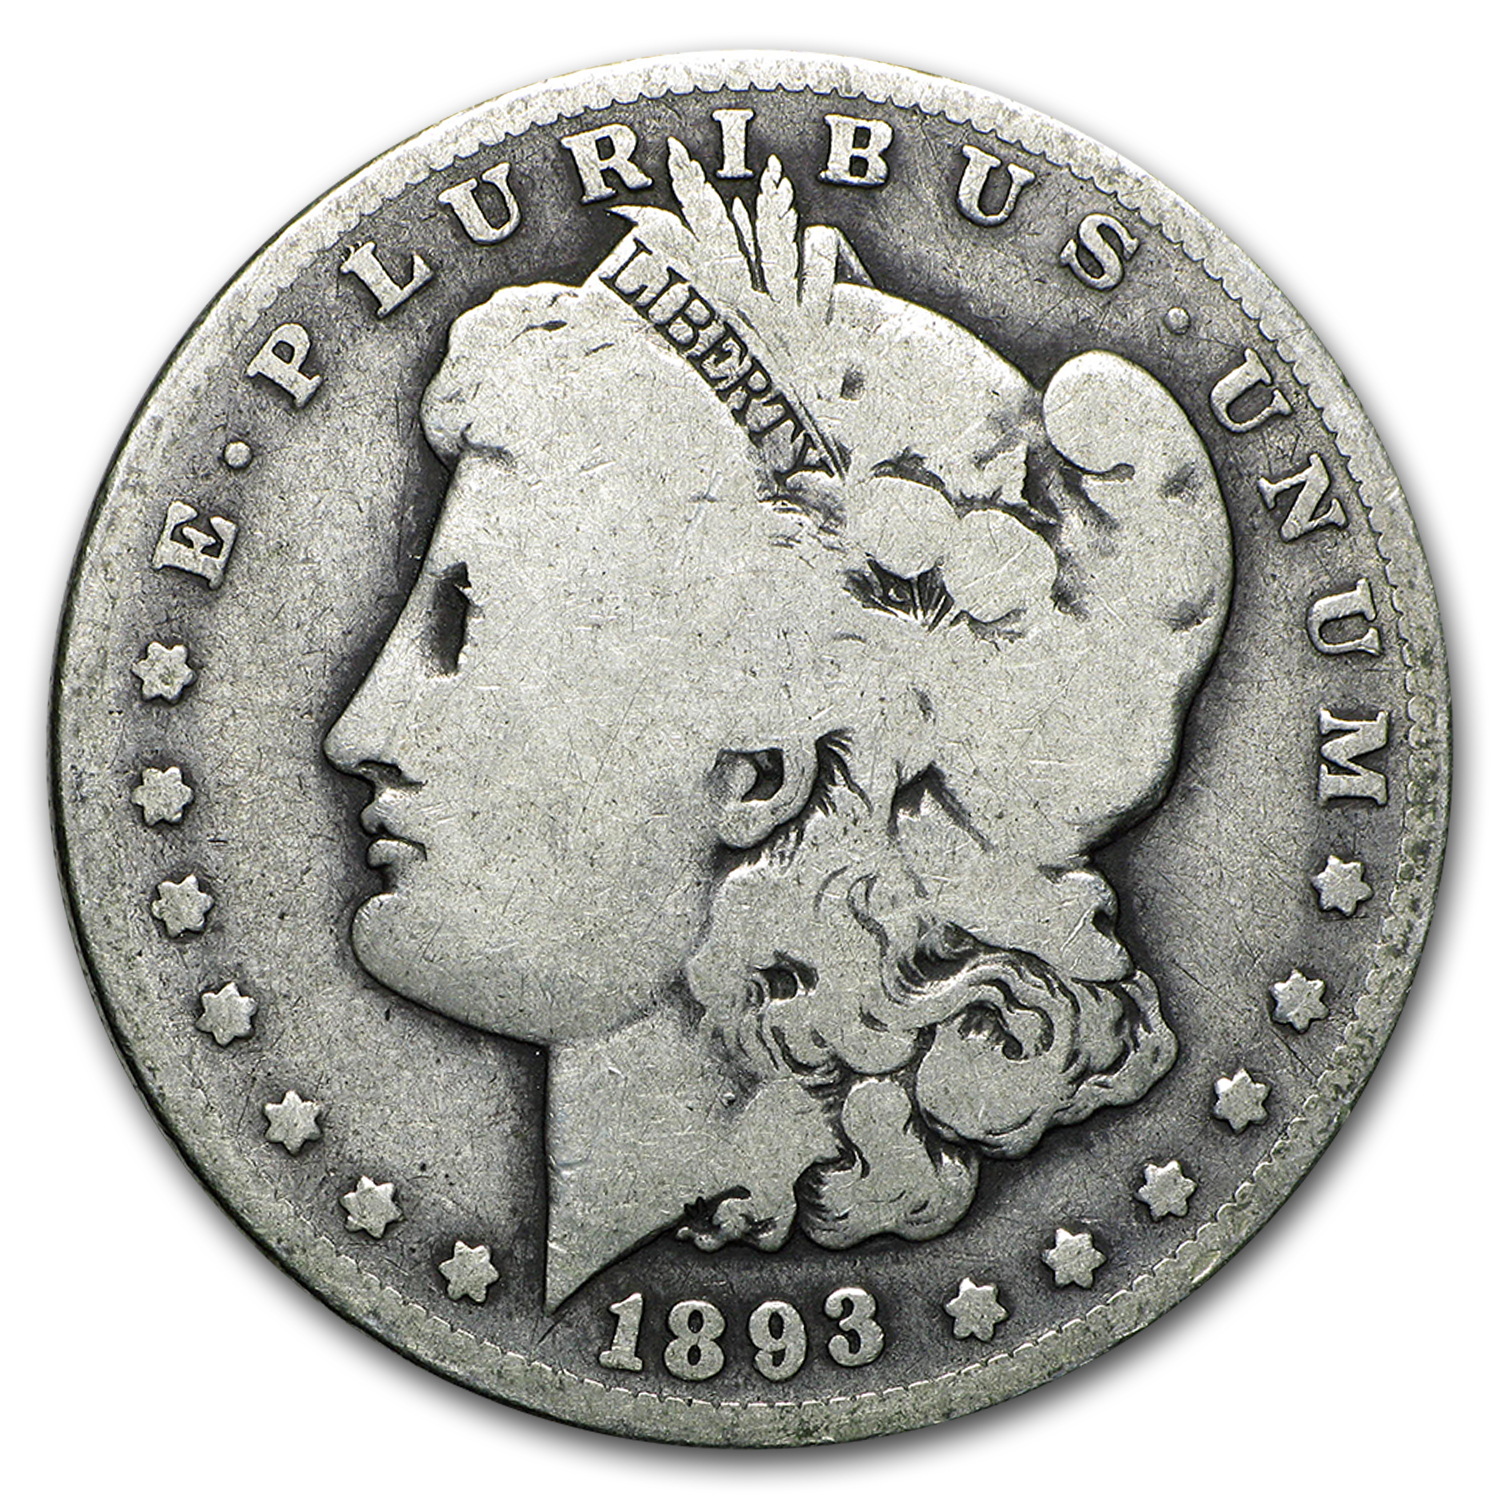 1893-O Morgan Dollar - Good